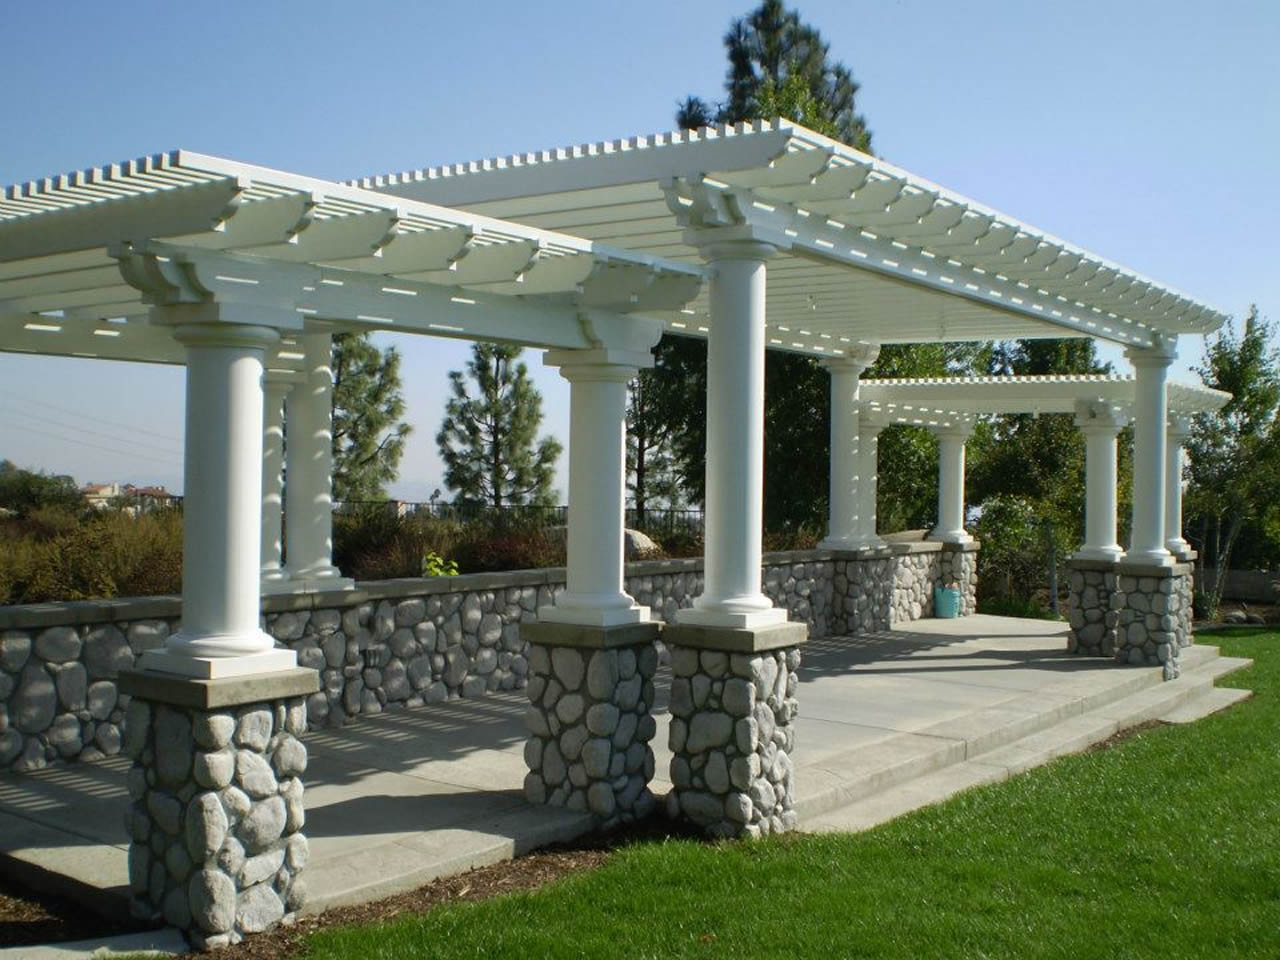 Freestanding Alumawood Patio Covers : Alumawood pergola lattice photo gallery